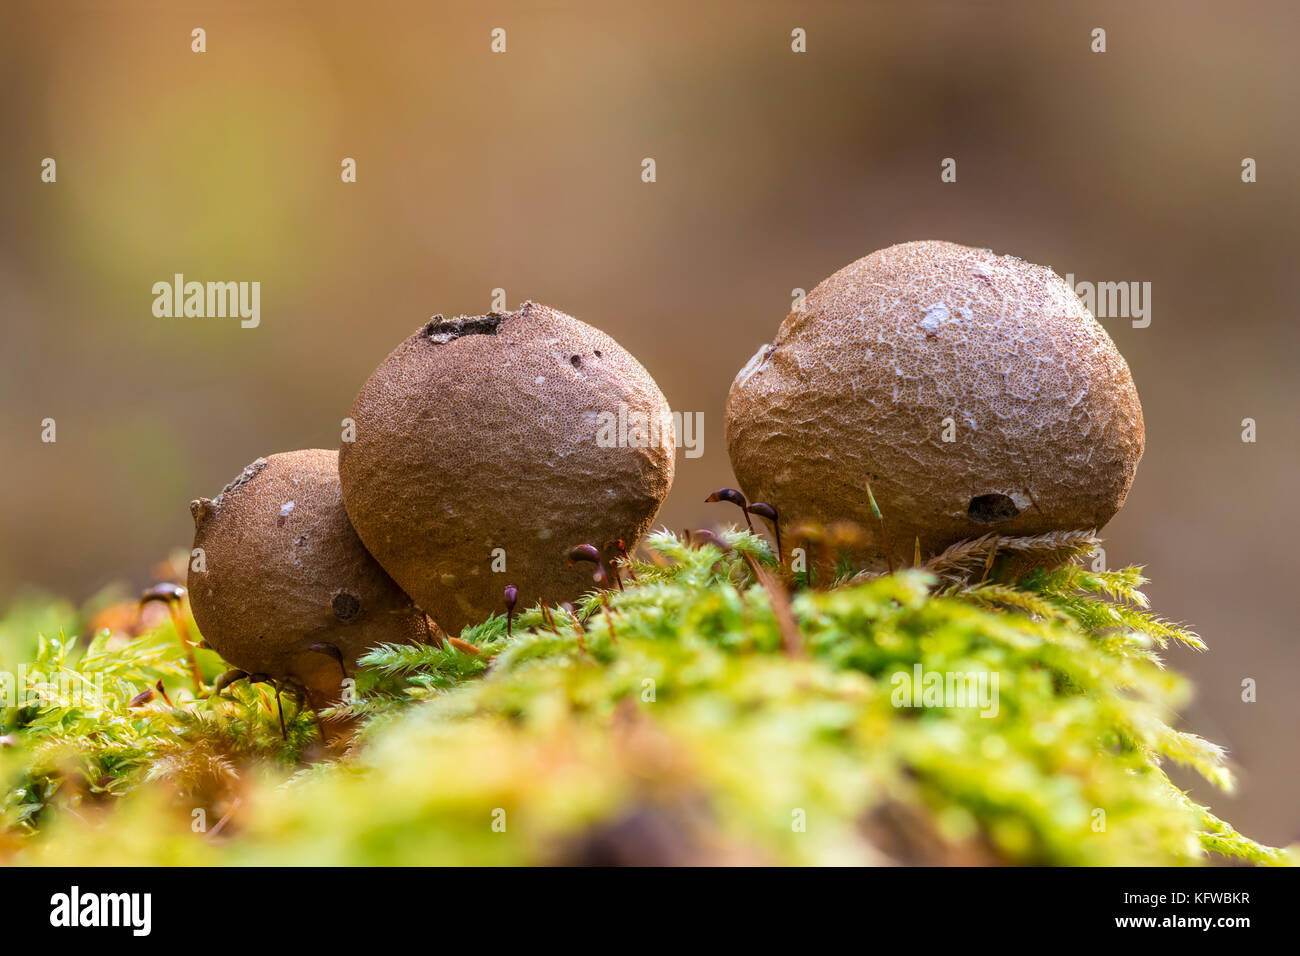 Close-up macro photo of Pear-shaped puffball (Lycoperdon pyriforme) mushrooms on a mossy stump in the autumn forest. - Stock Image